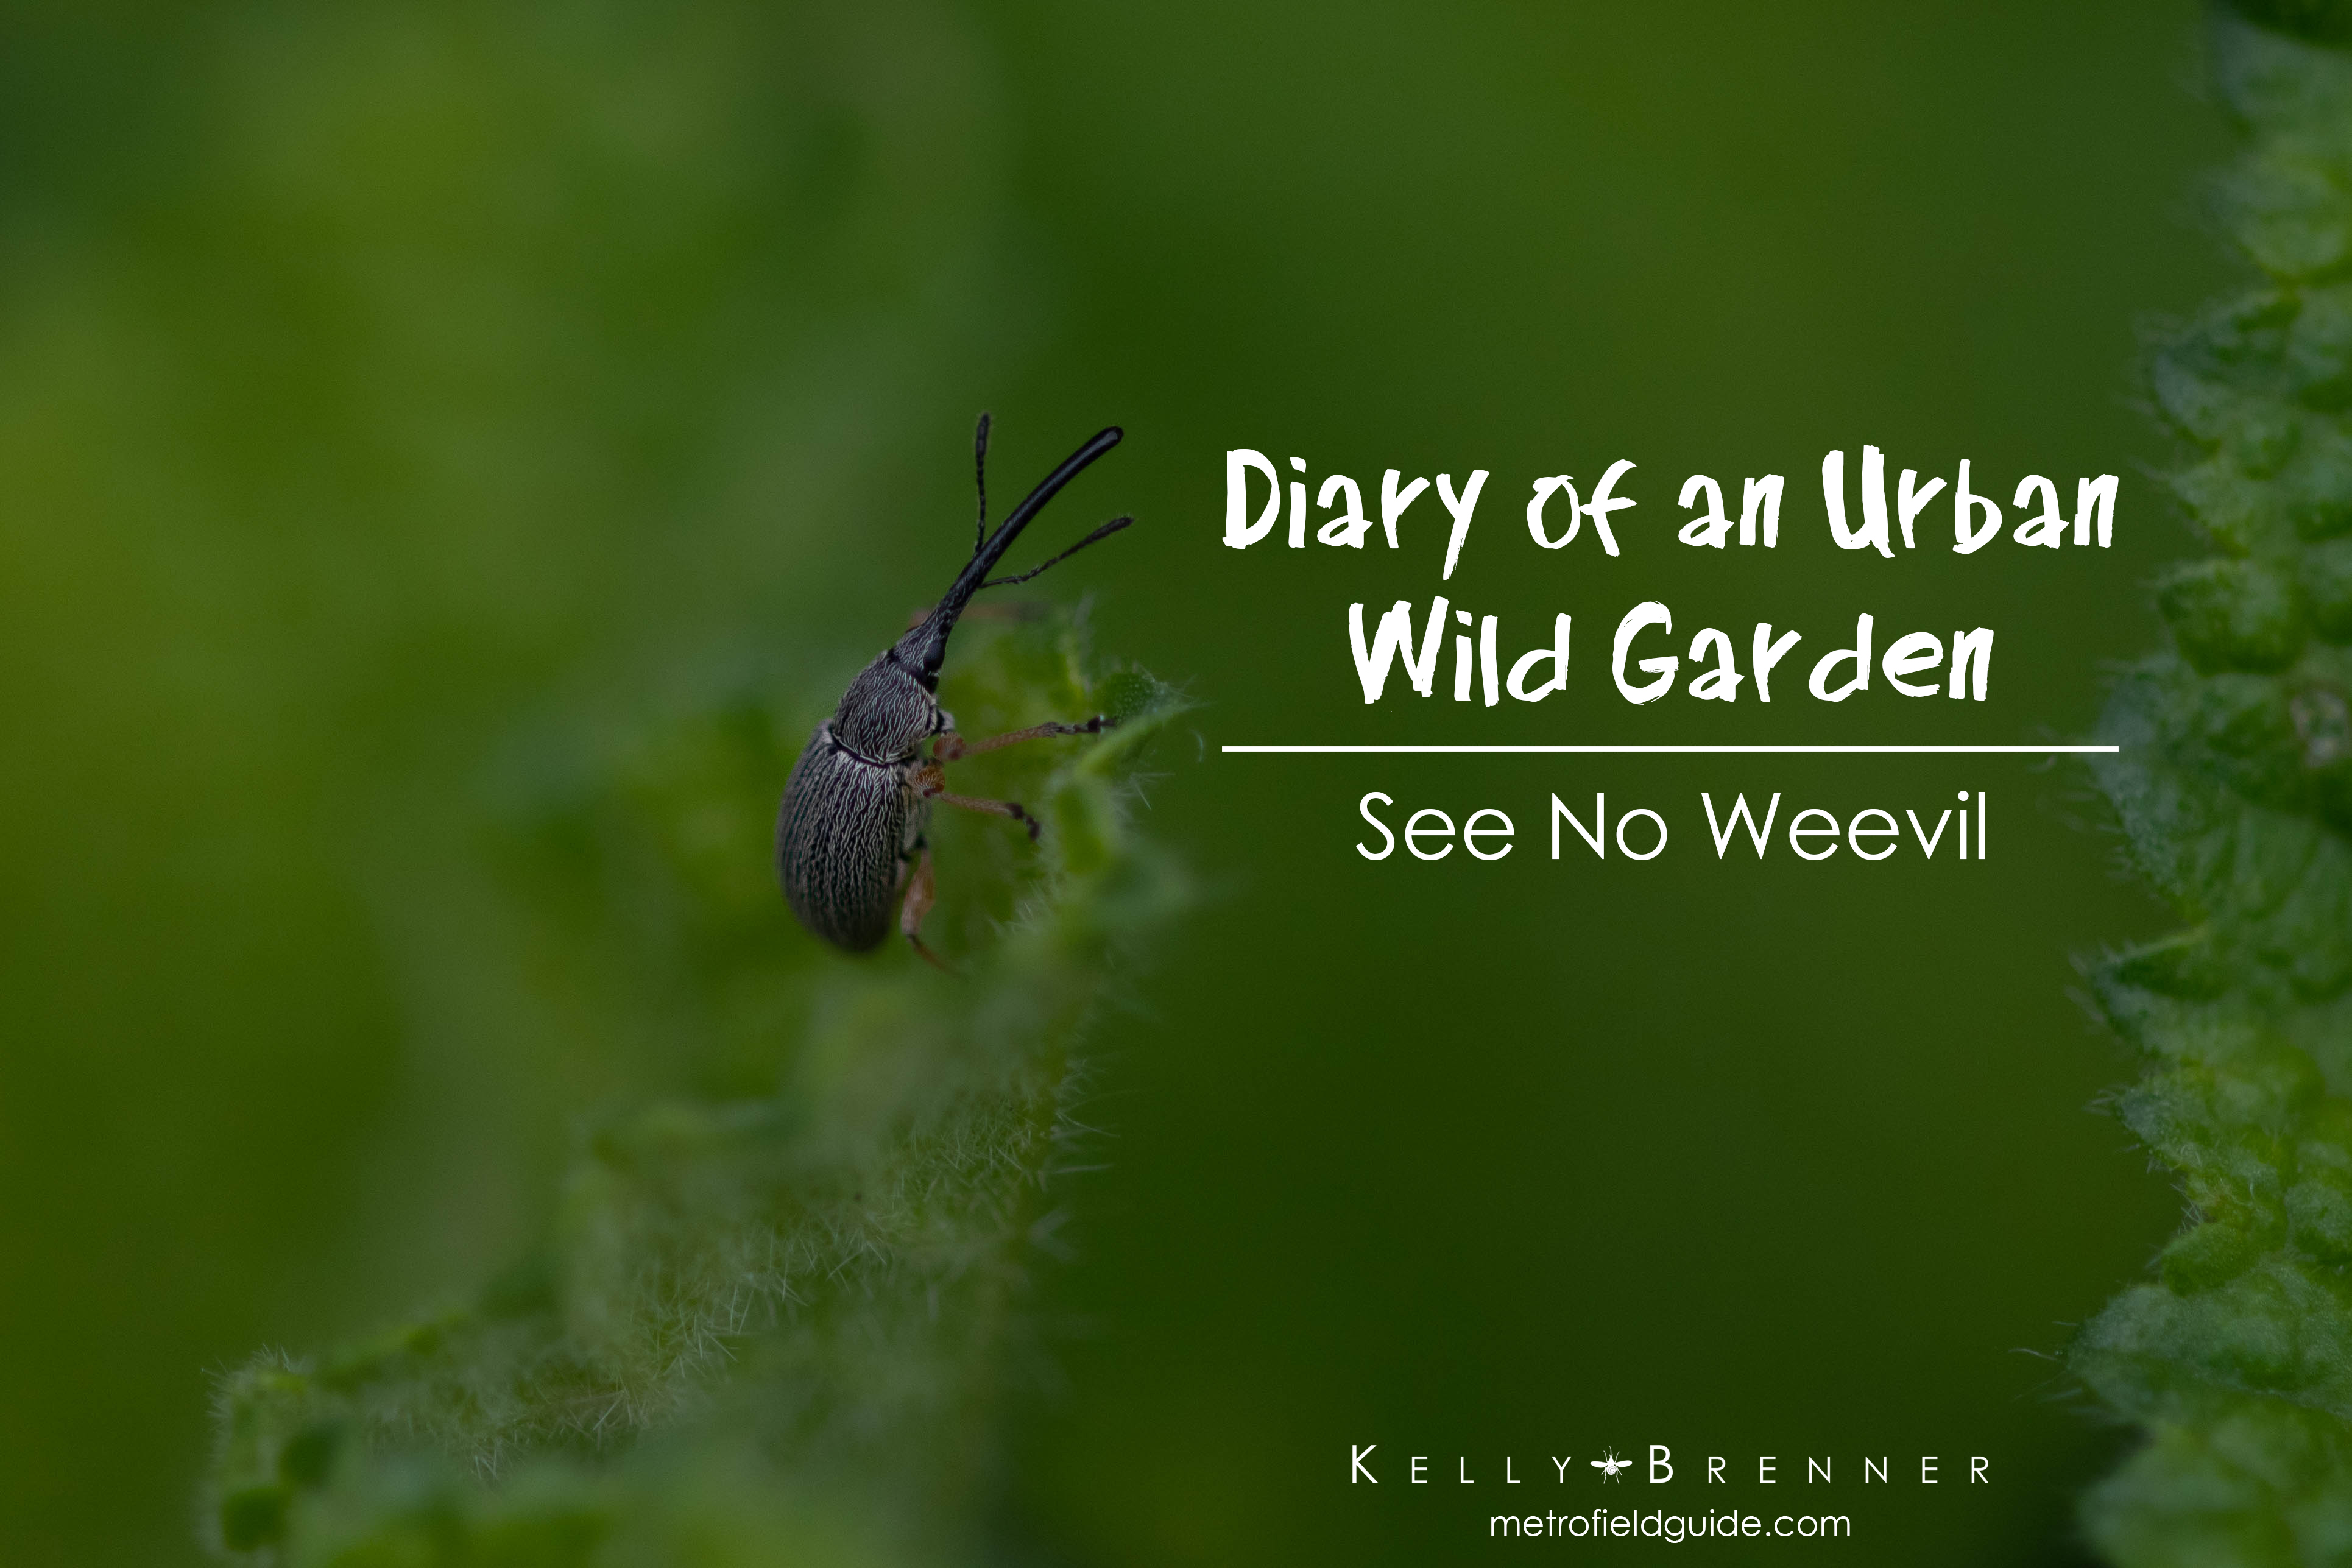 Diary of an Urban Wild Garden: See No Weevil